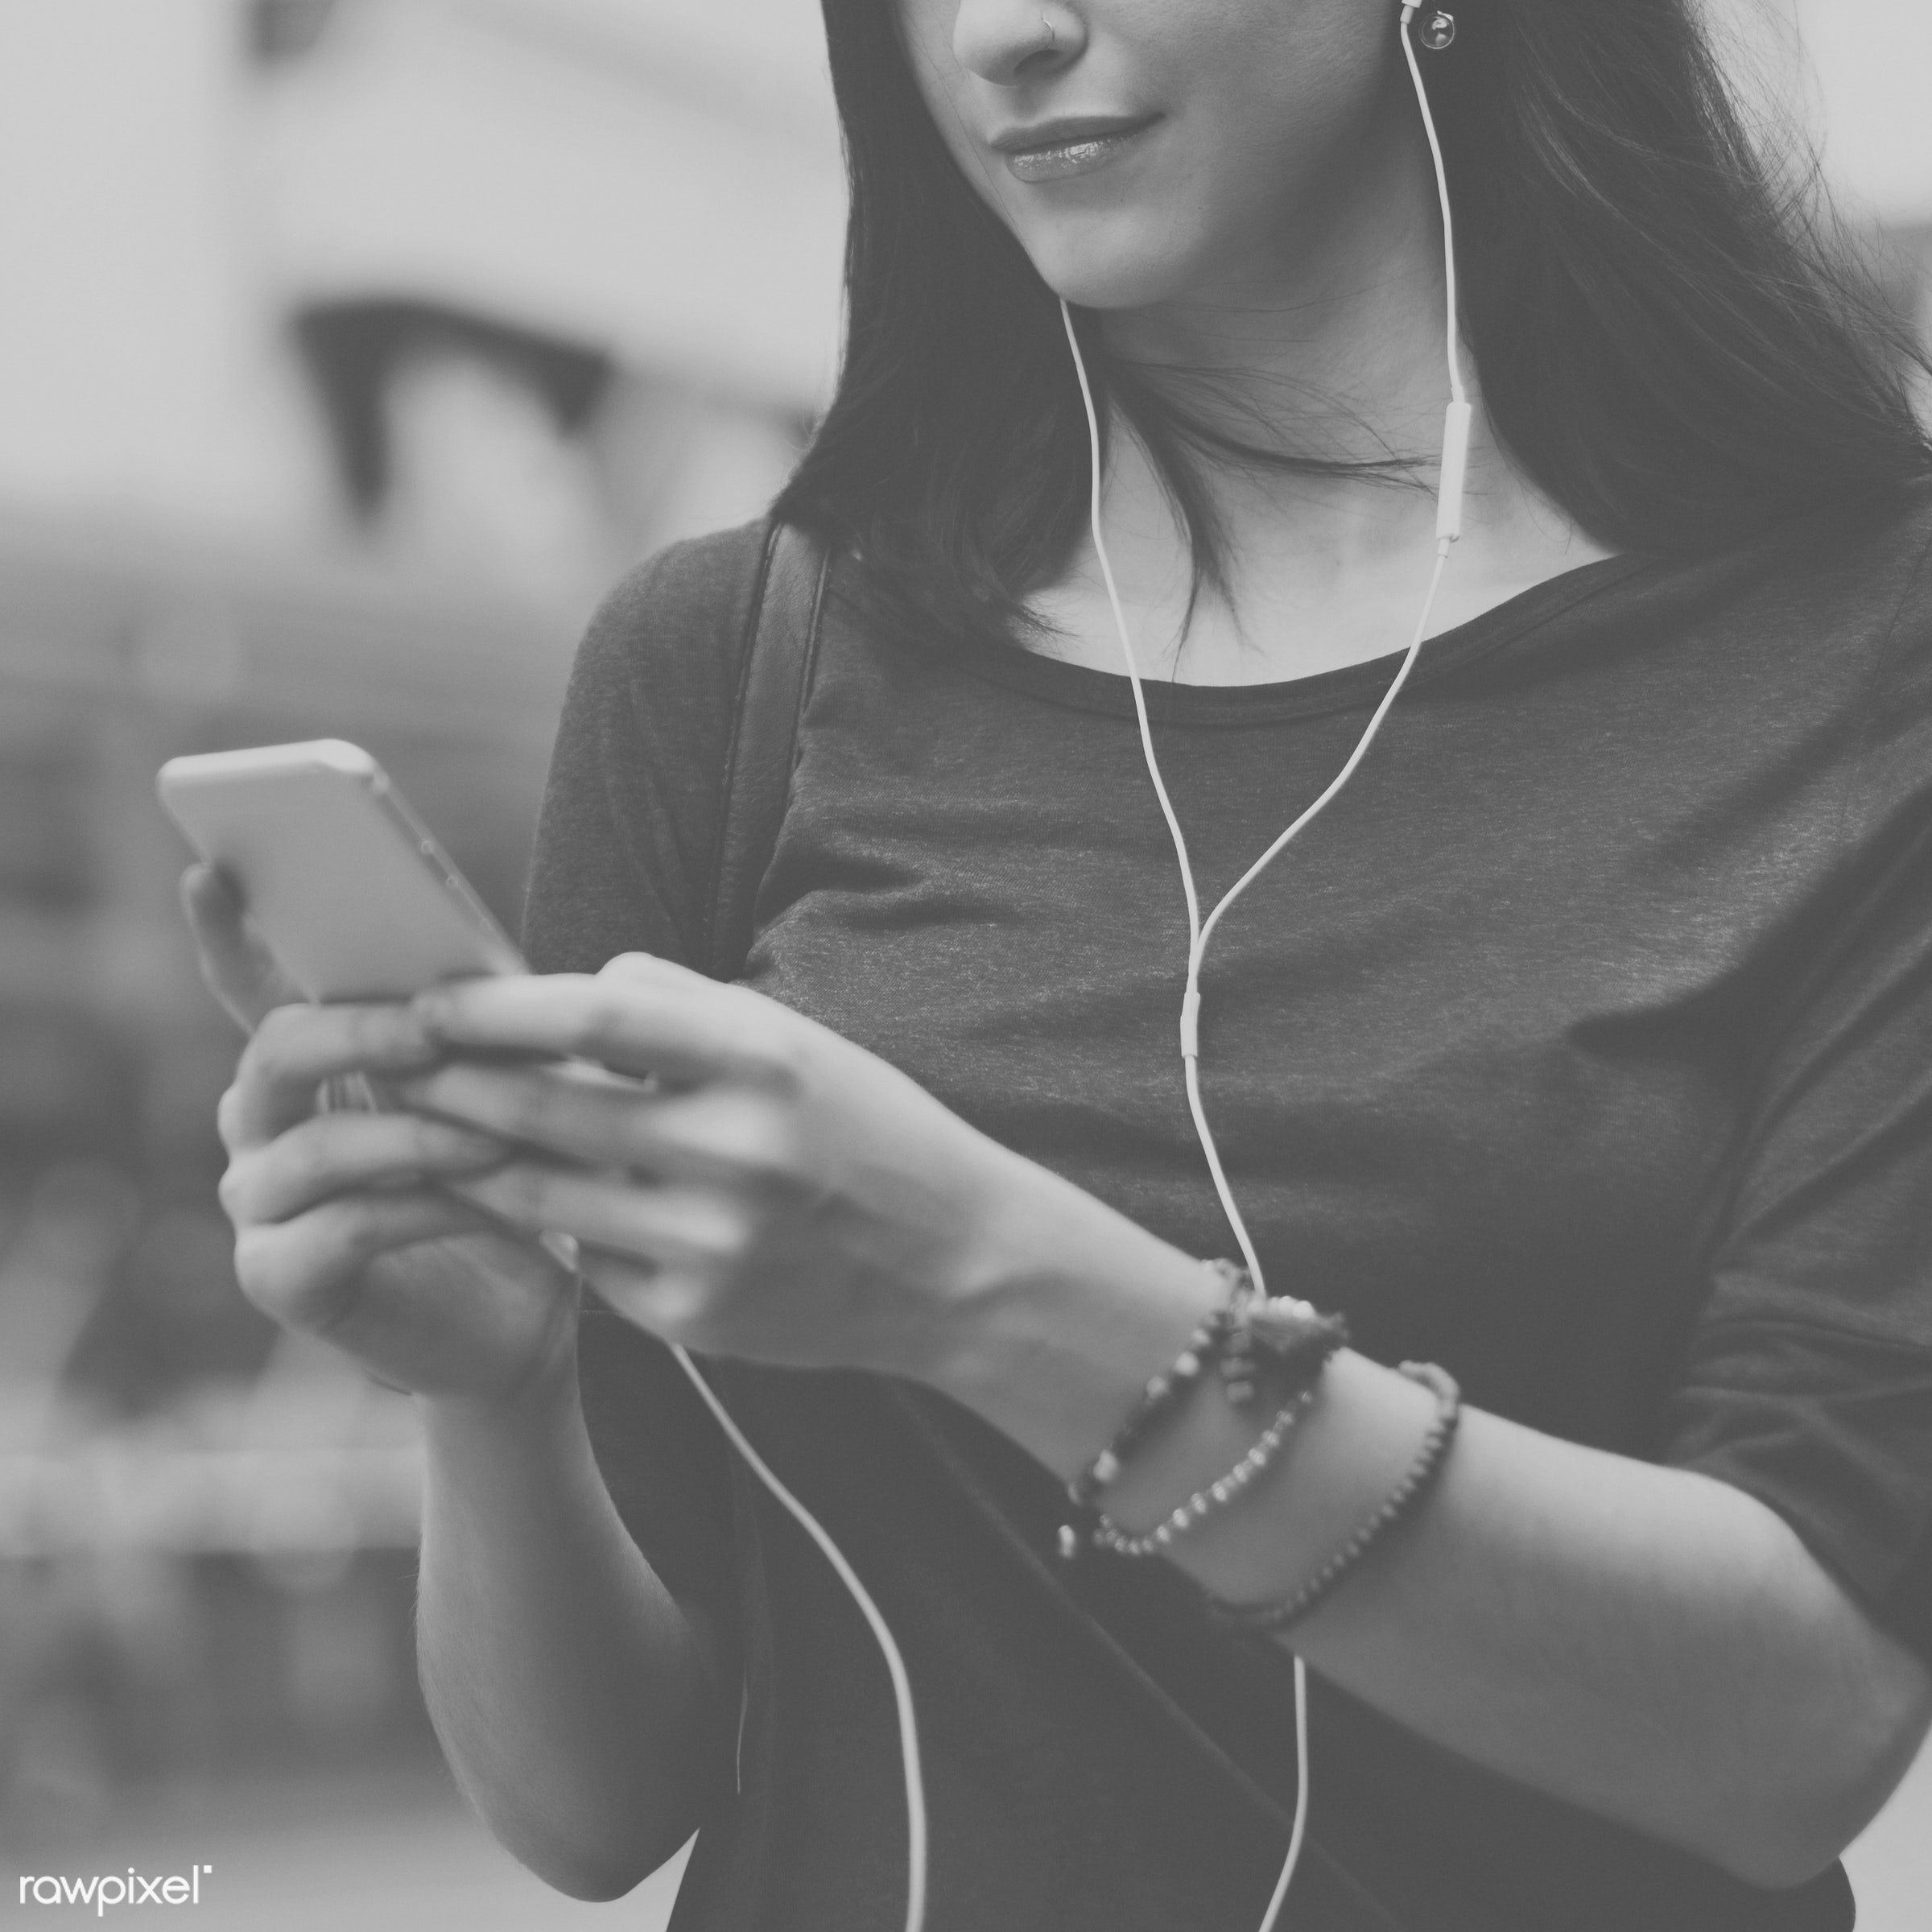 lifestyles, activity, audio equipment, casual, cheerful, chilling, city, cityscape, connection, crowd, earphones, enjoyment...